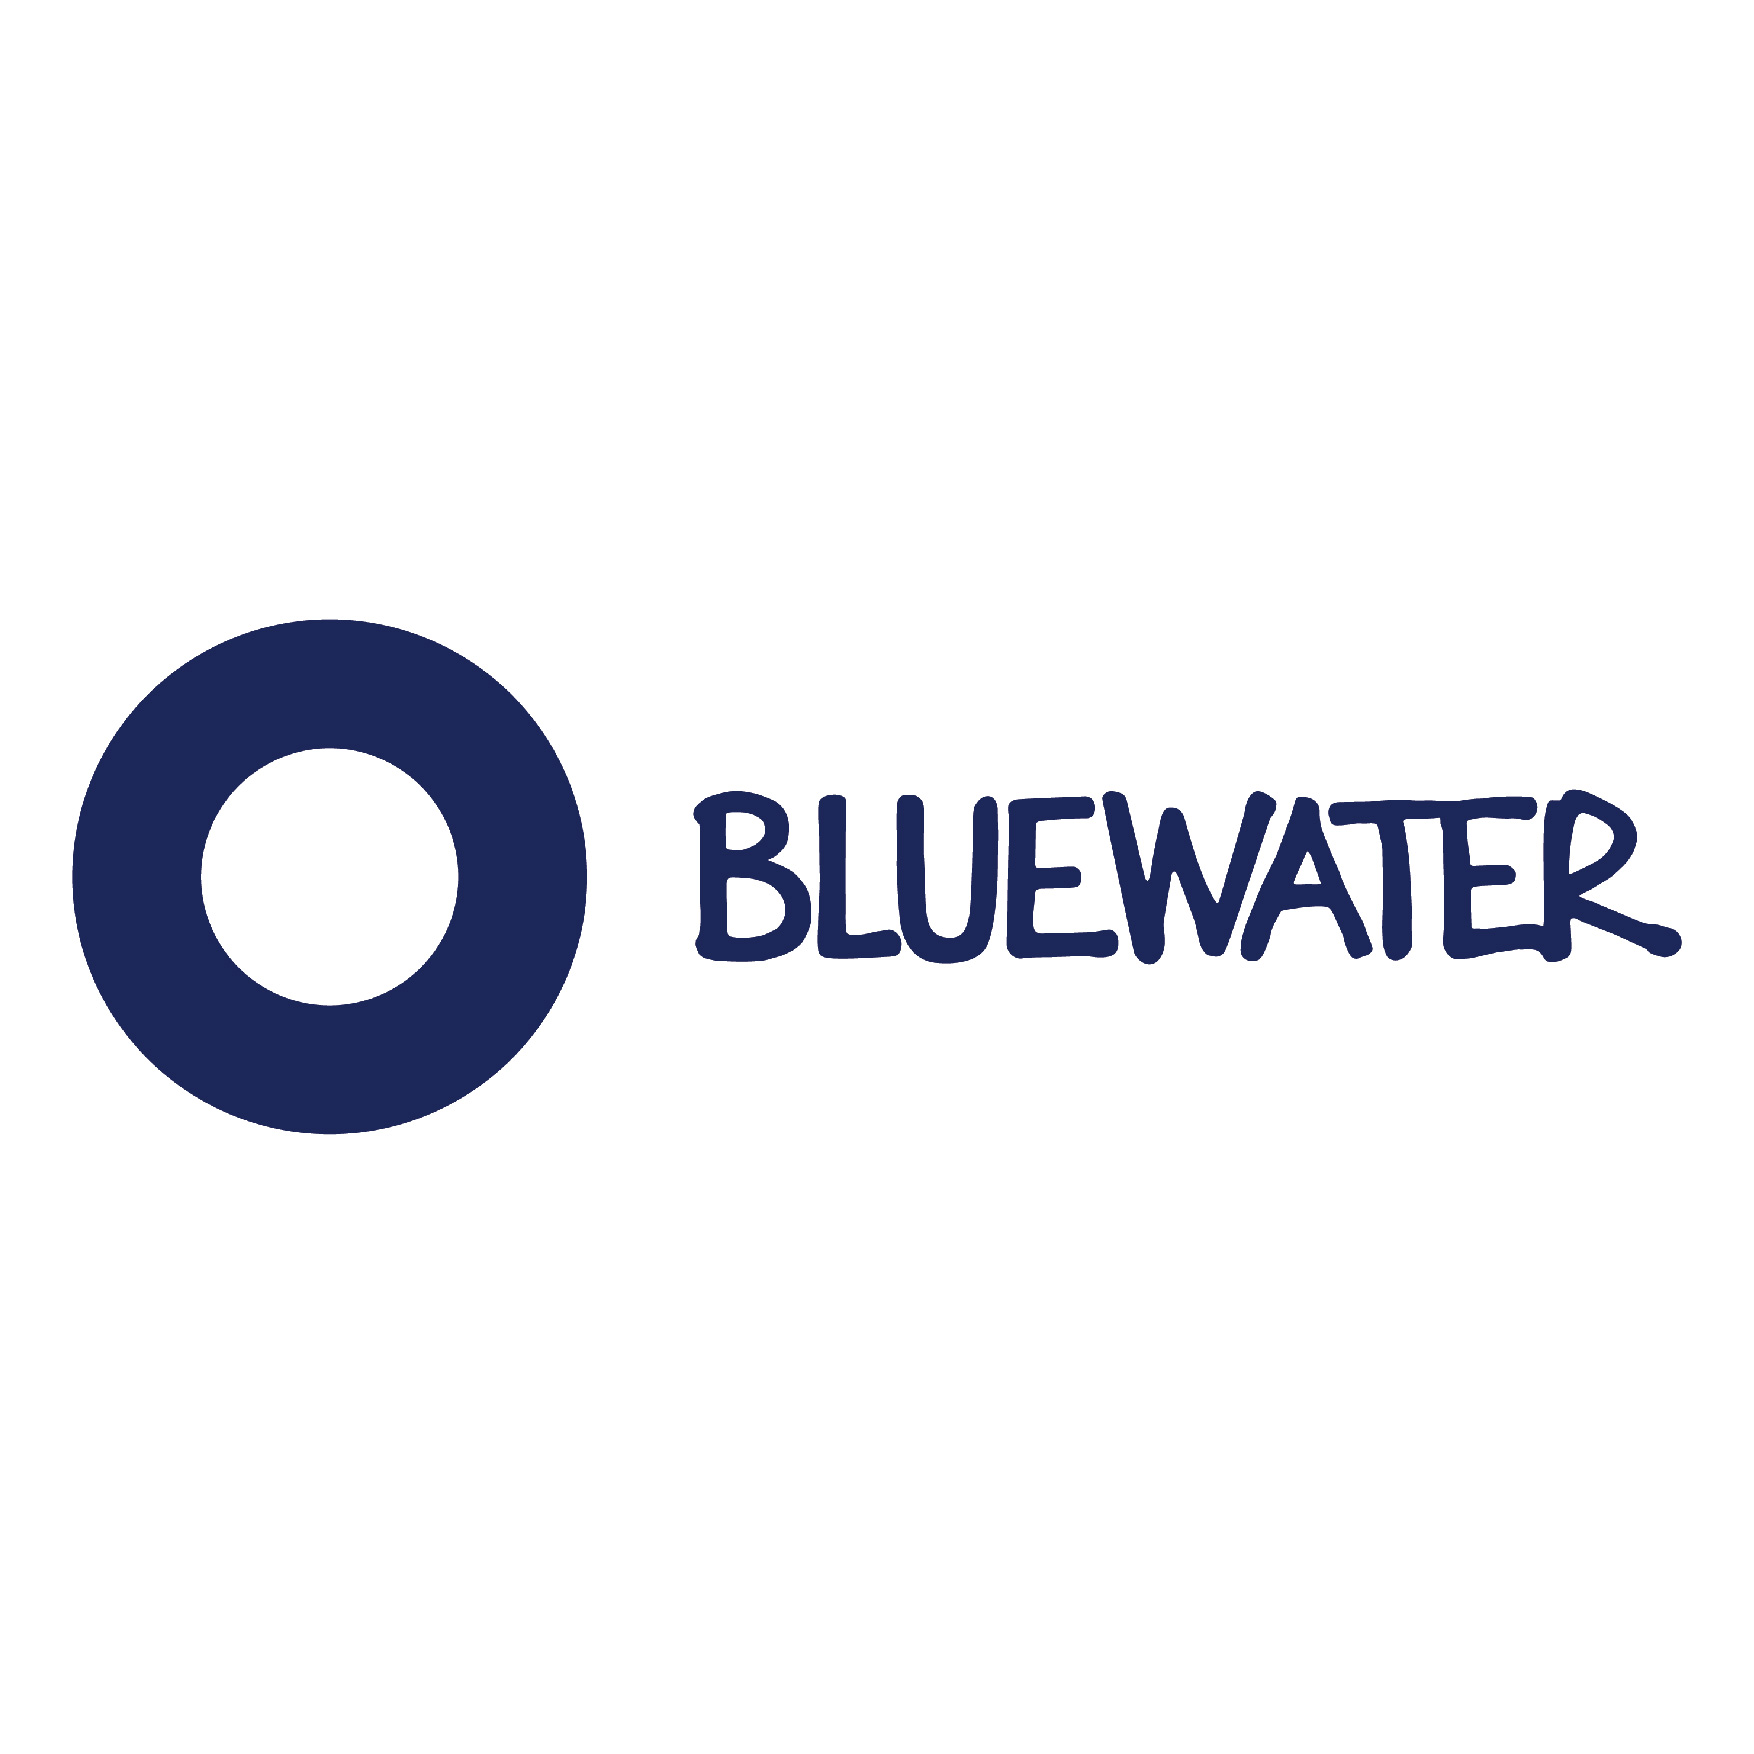 Why Bluewater?